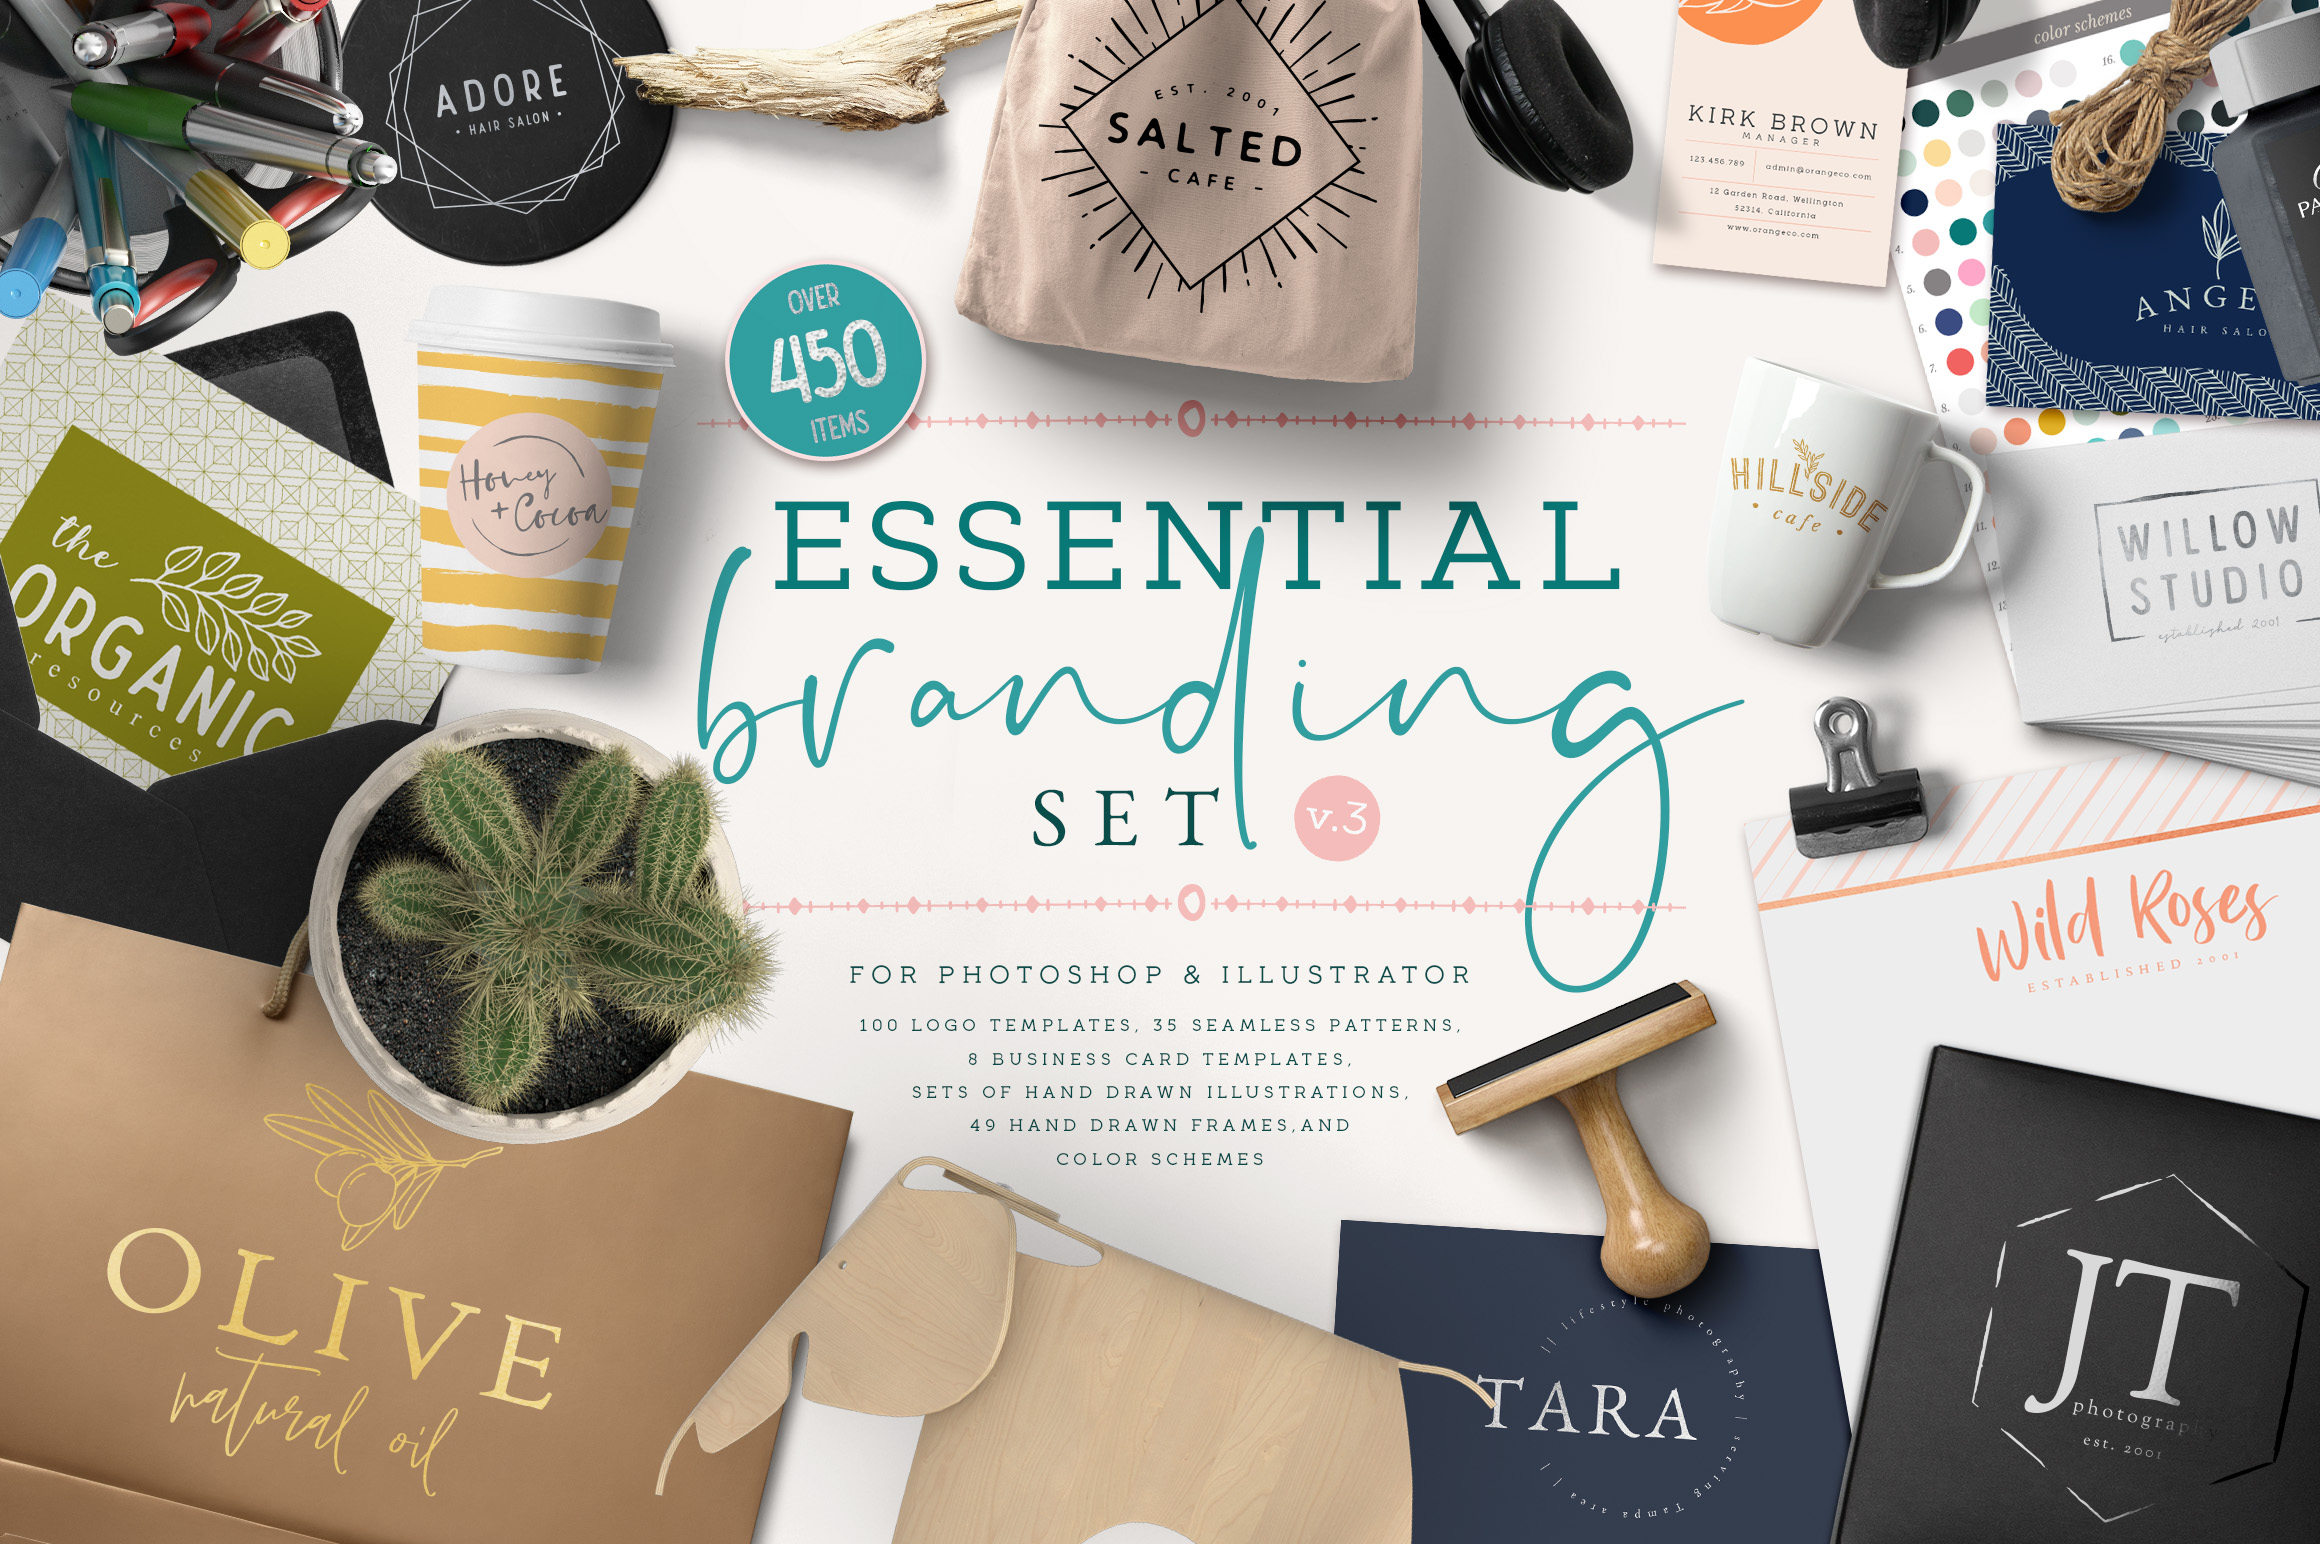 Essential Branding Set Volume 3